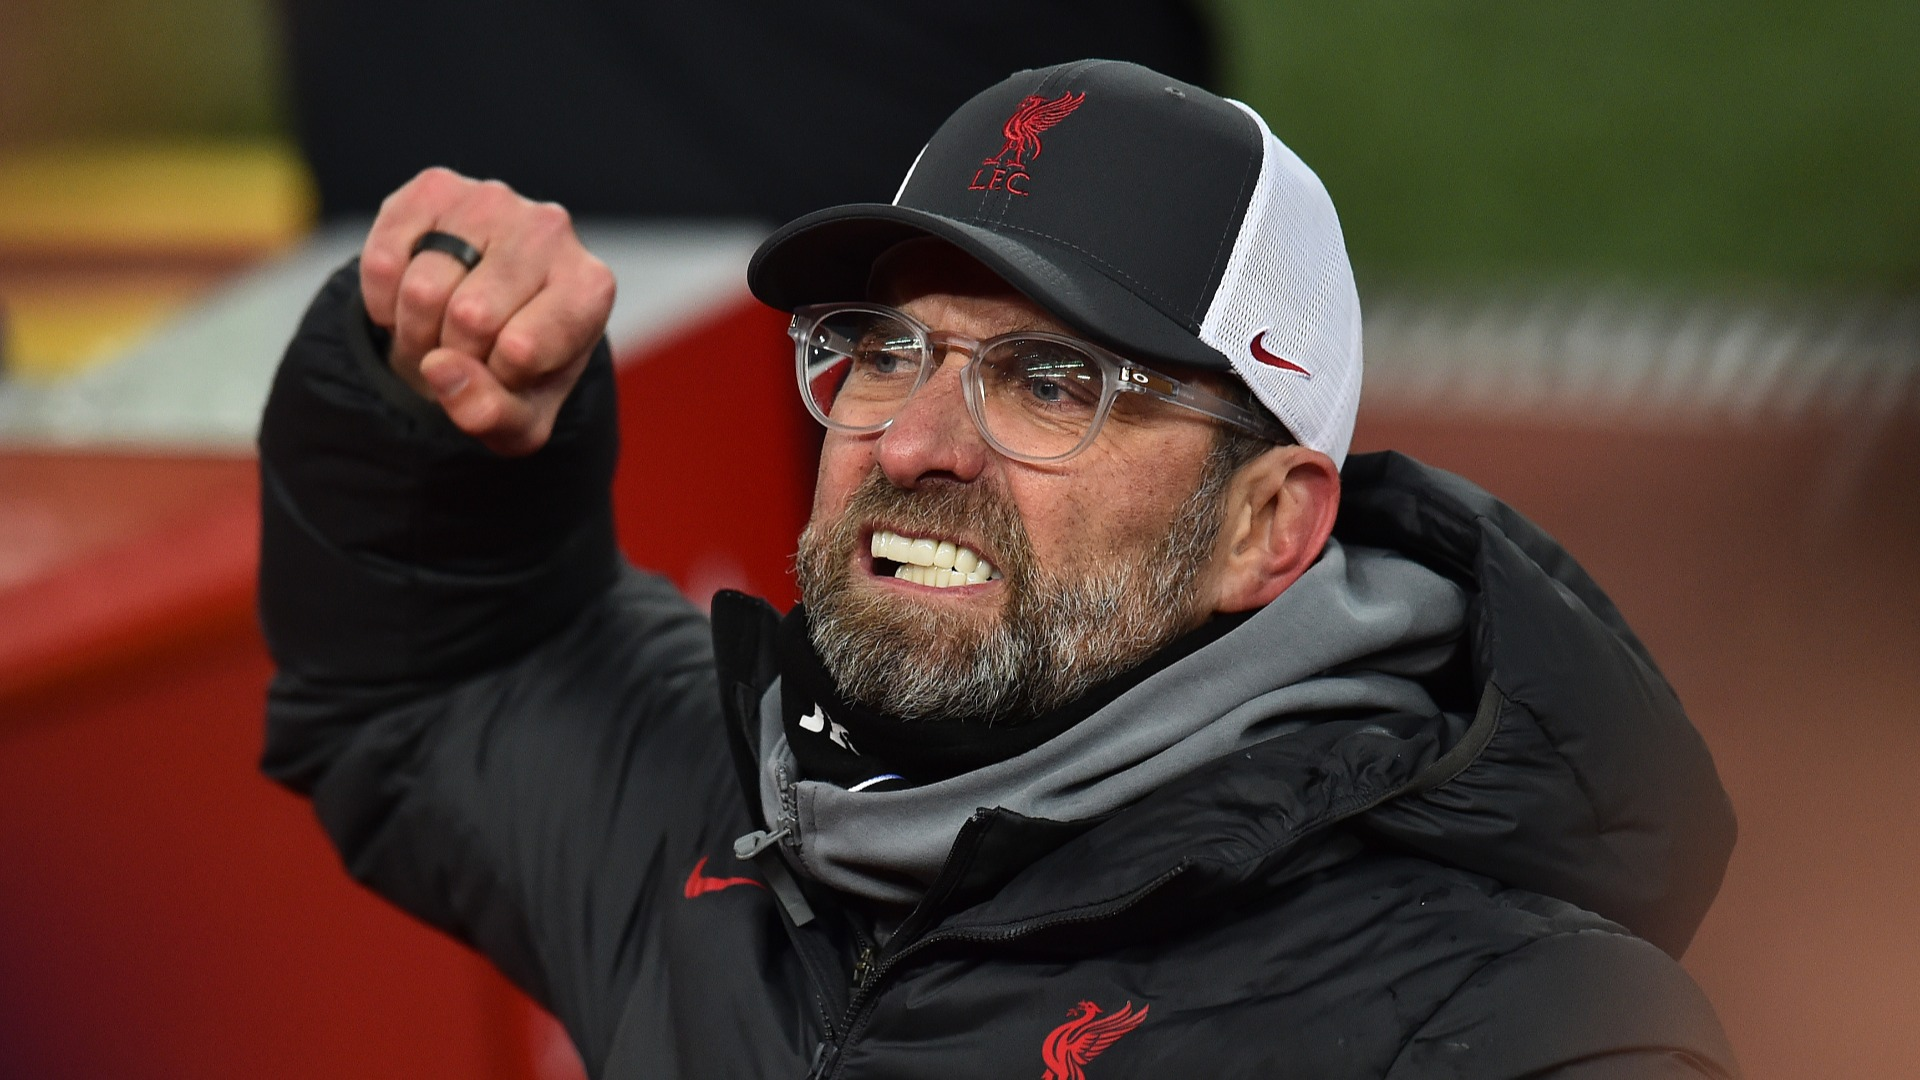 Premier League data dive: Liverpool in seventh heaven with historic win as Arsenal demise continues